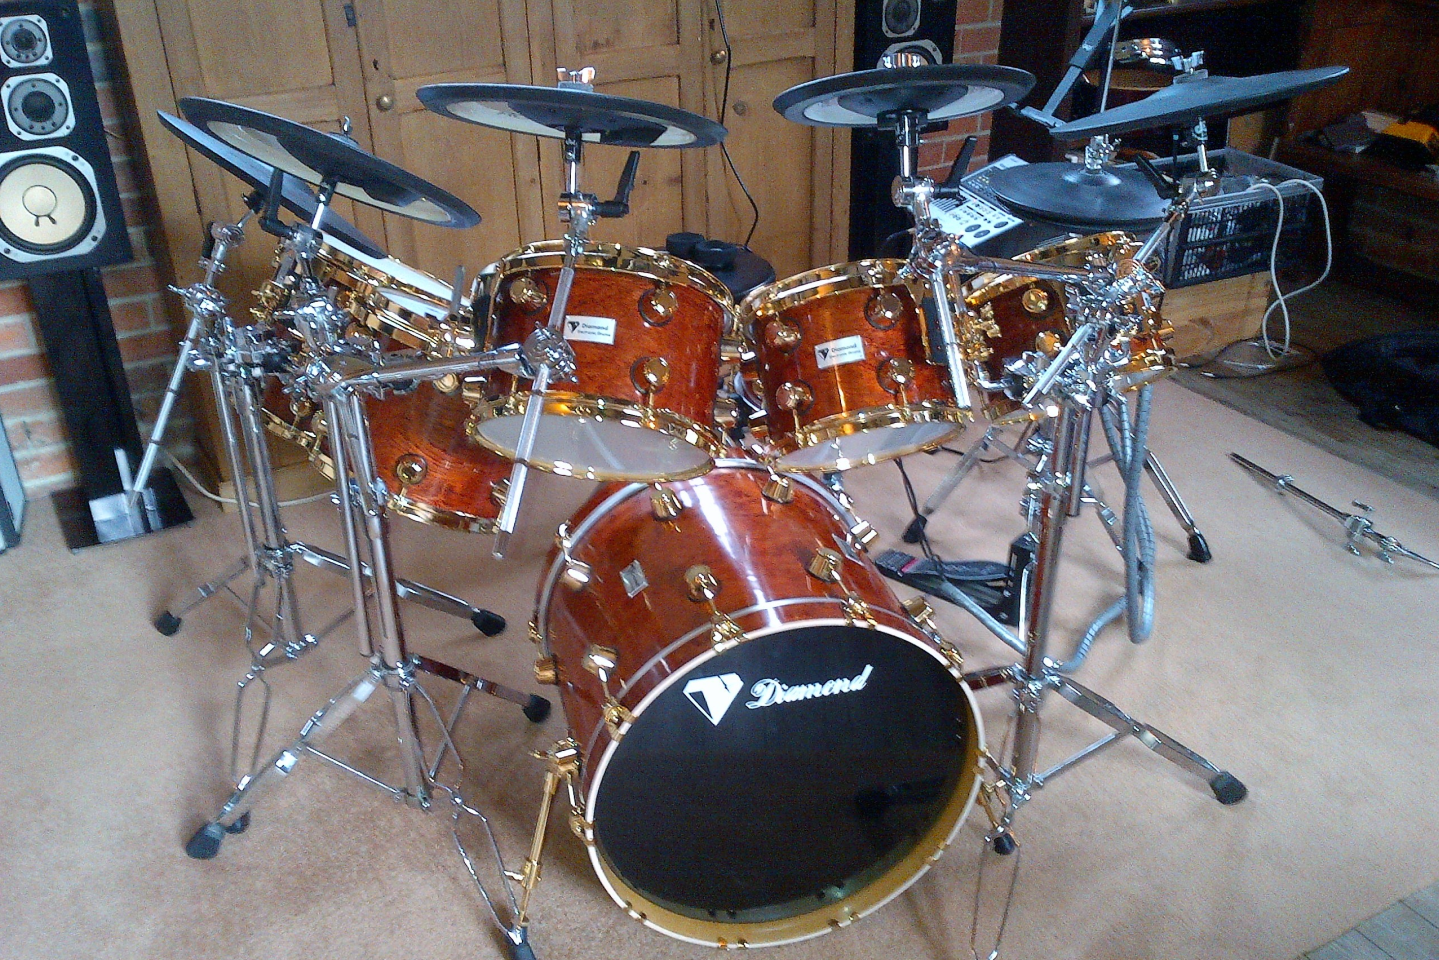 Picture of a drum kit chrome plated.